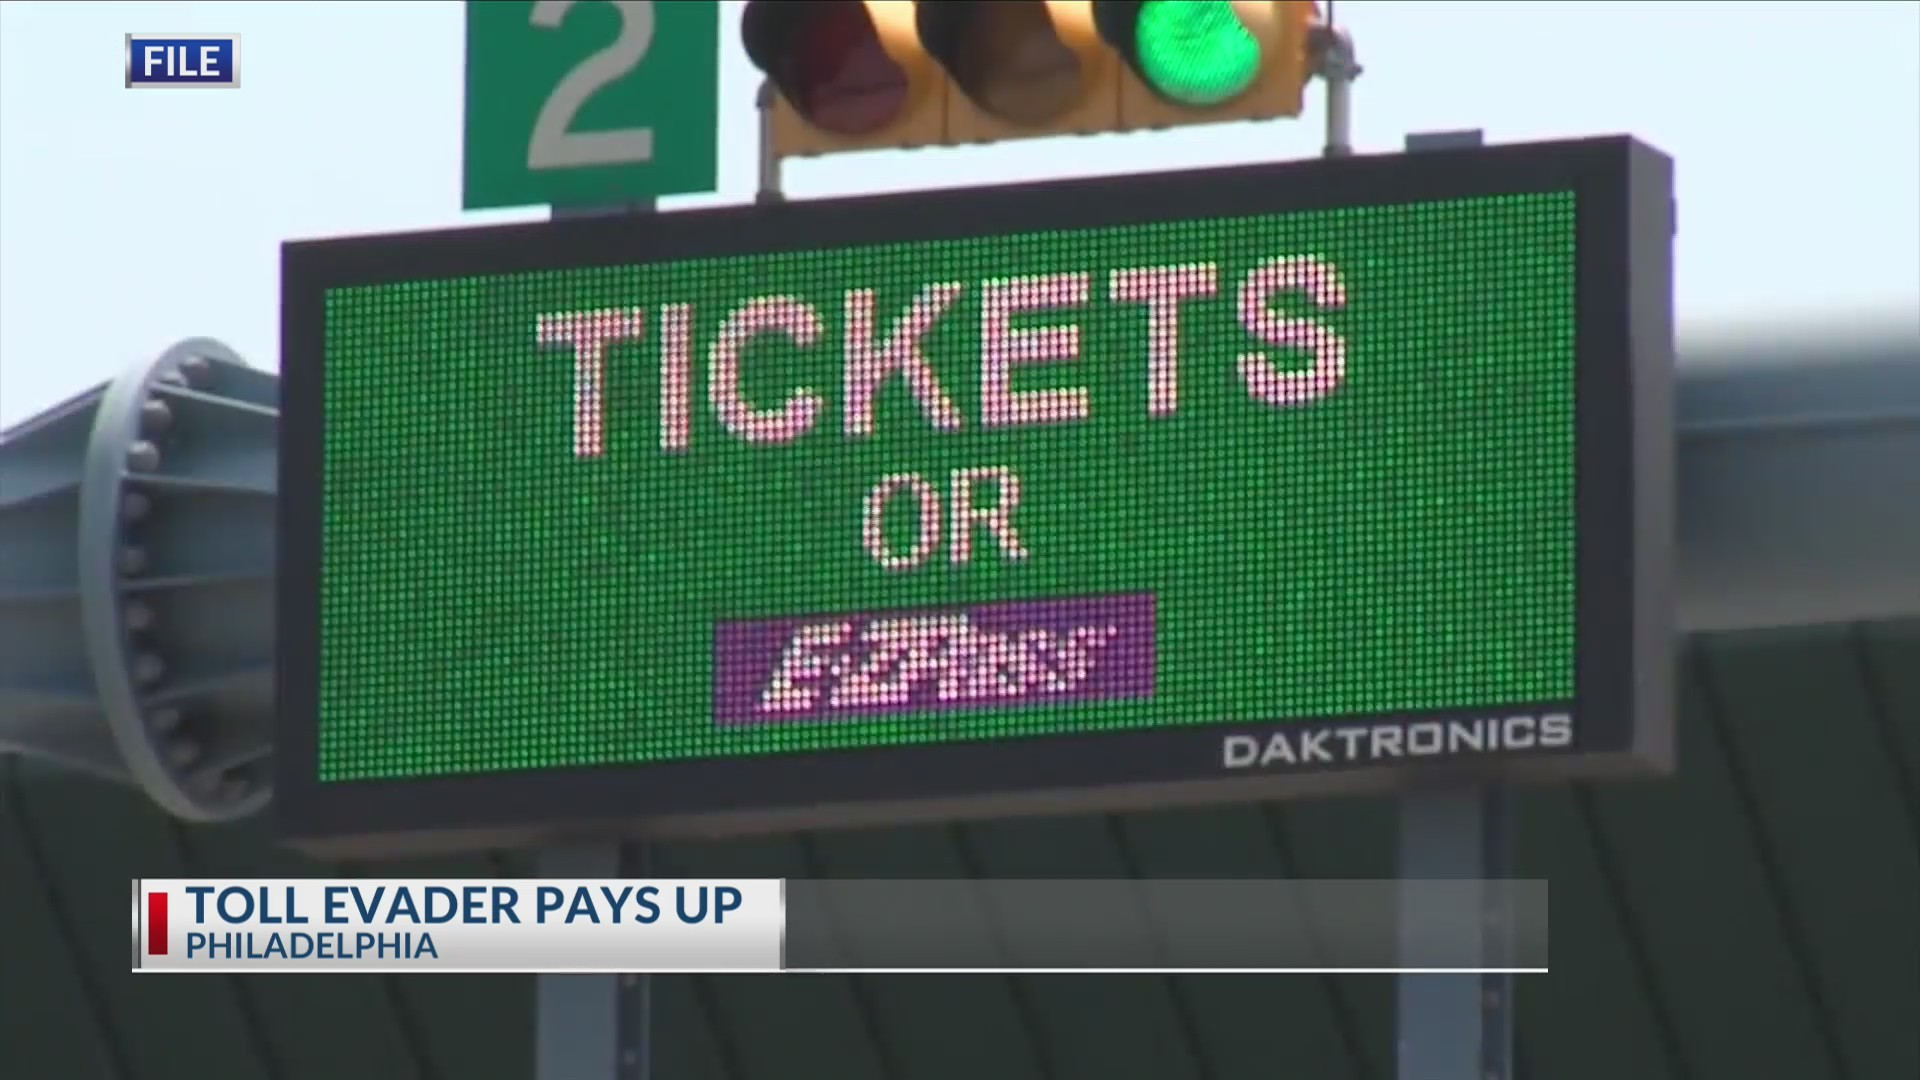 Toll evader pays up